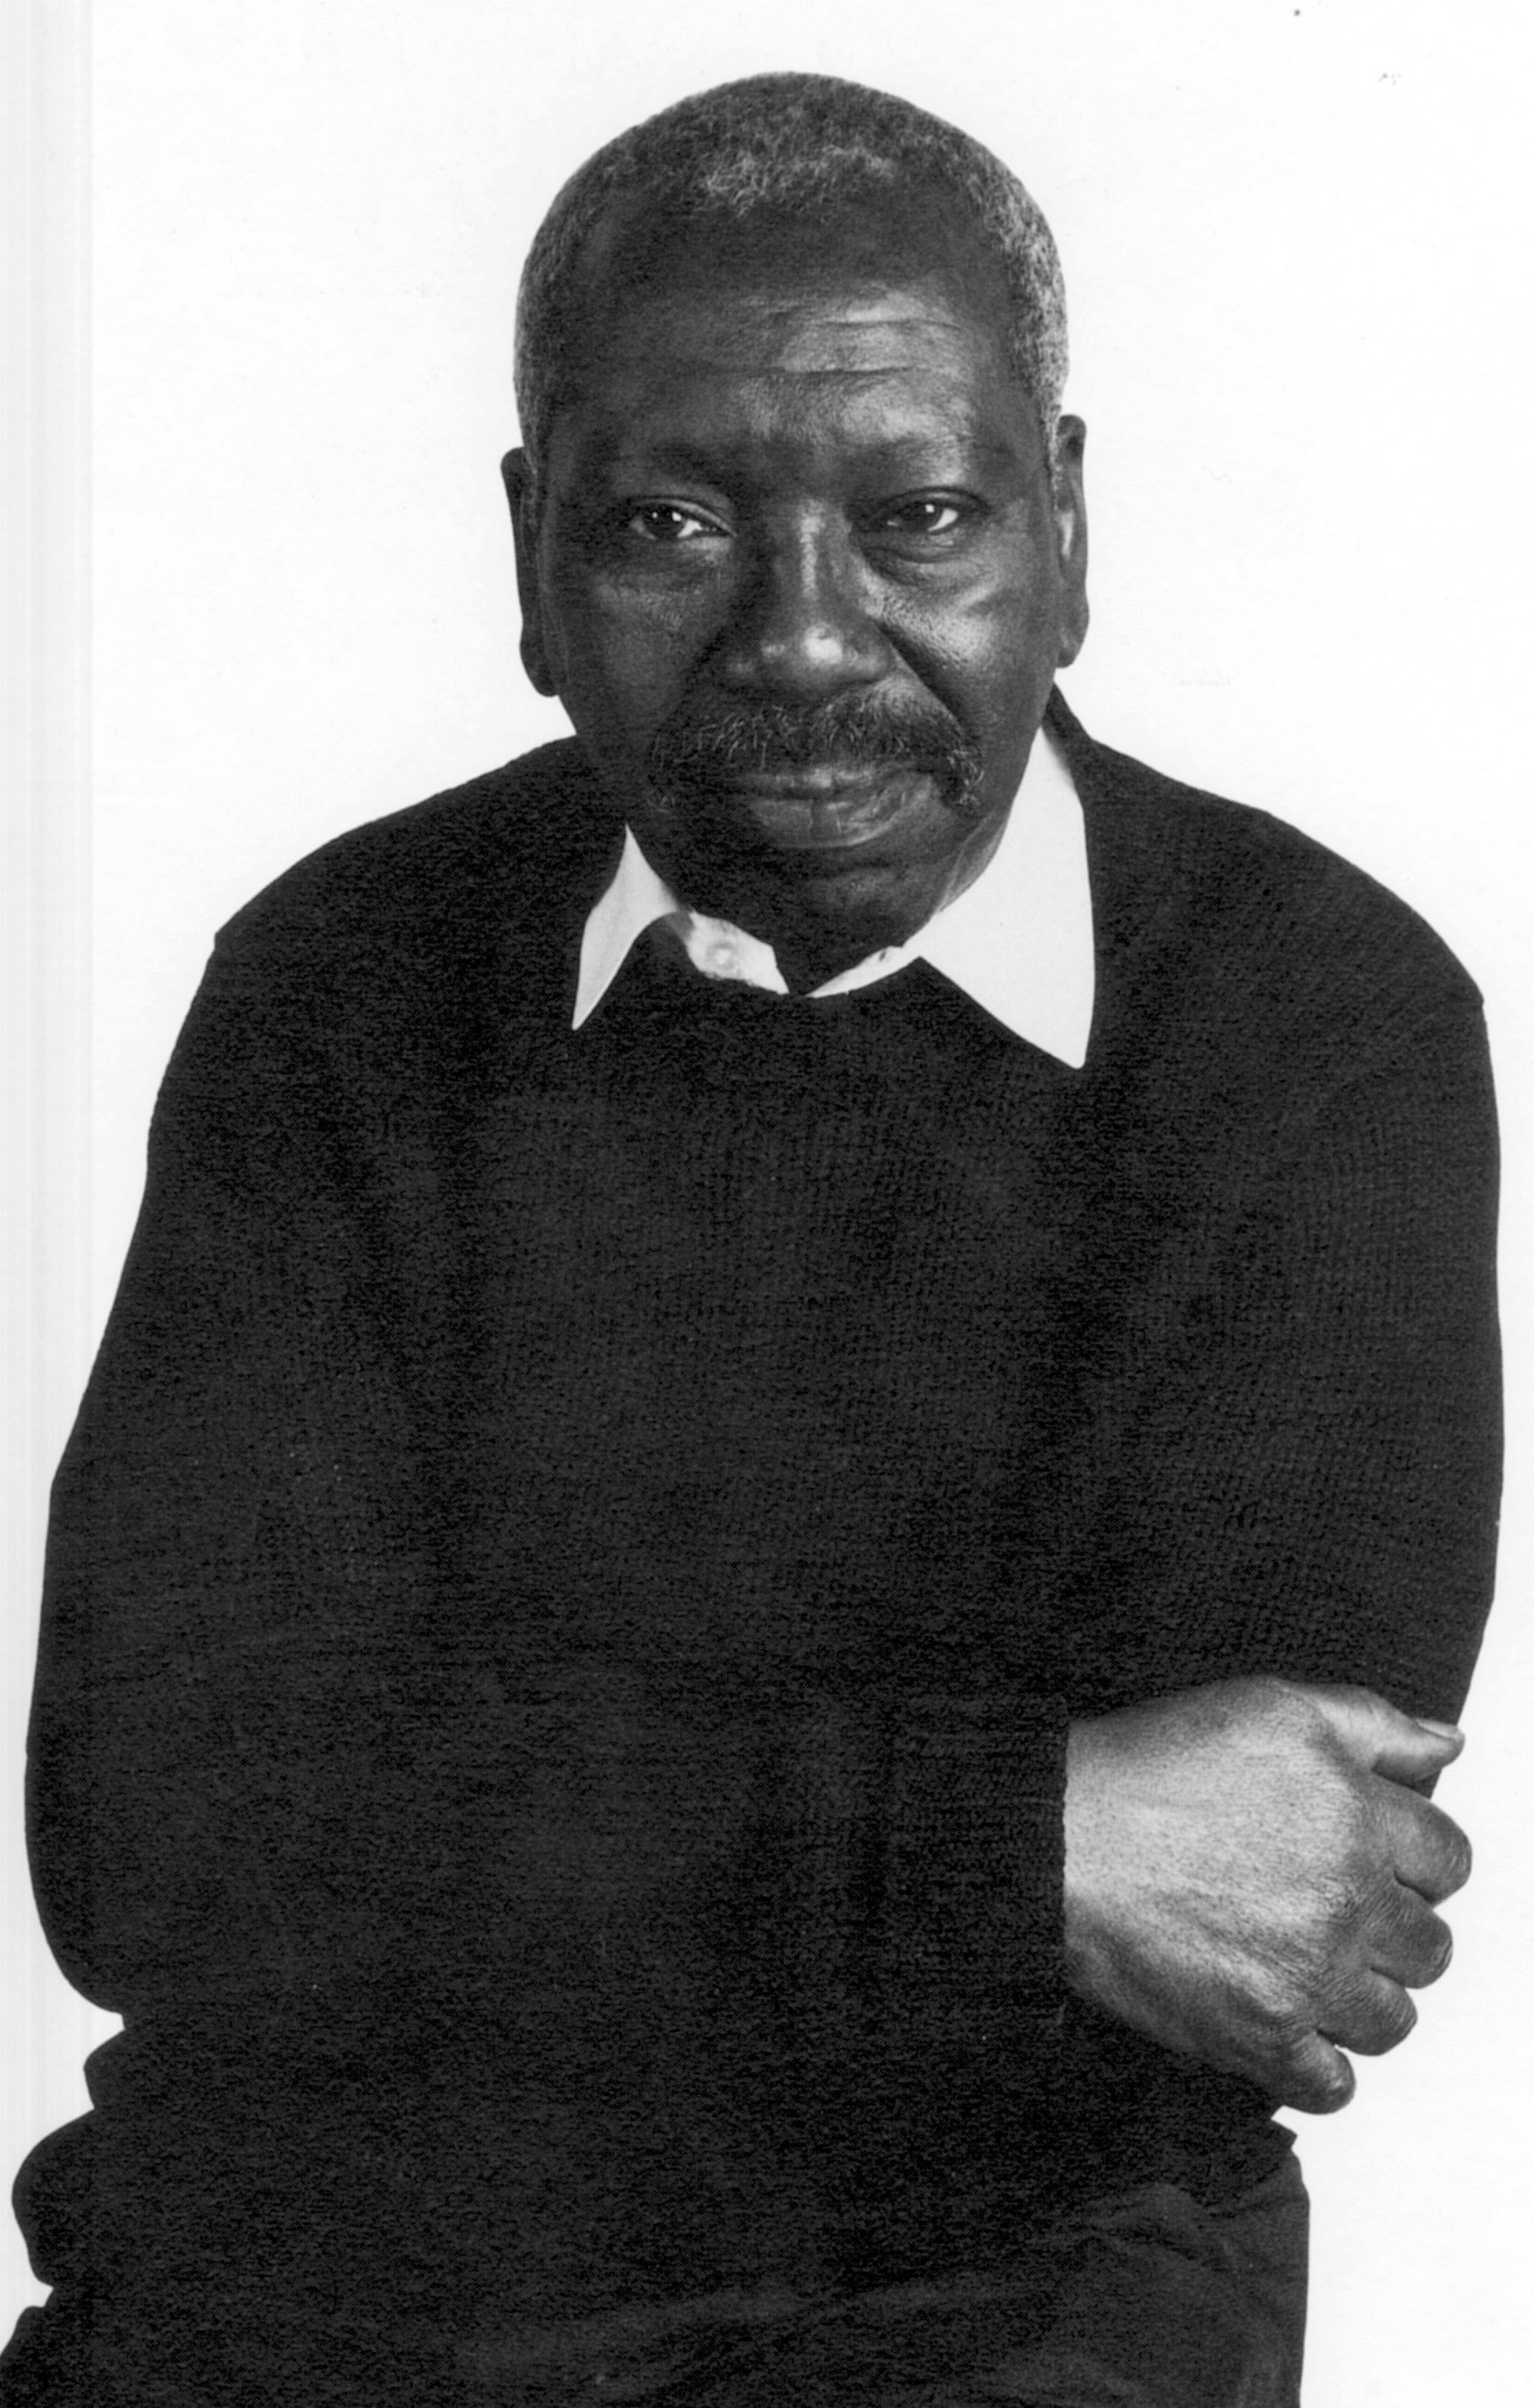 A photo of Jacob Lawrence